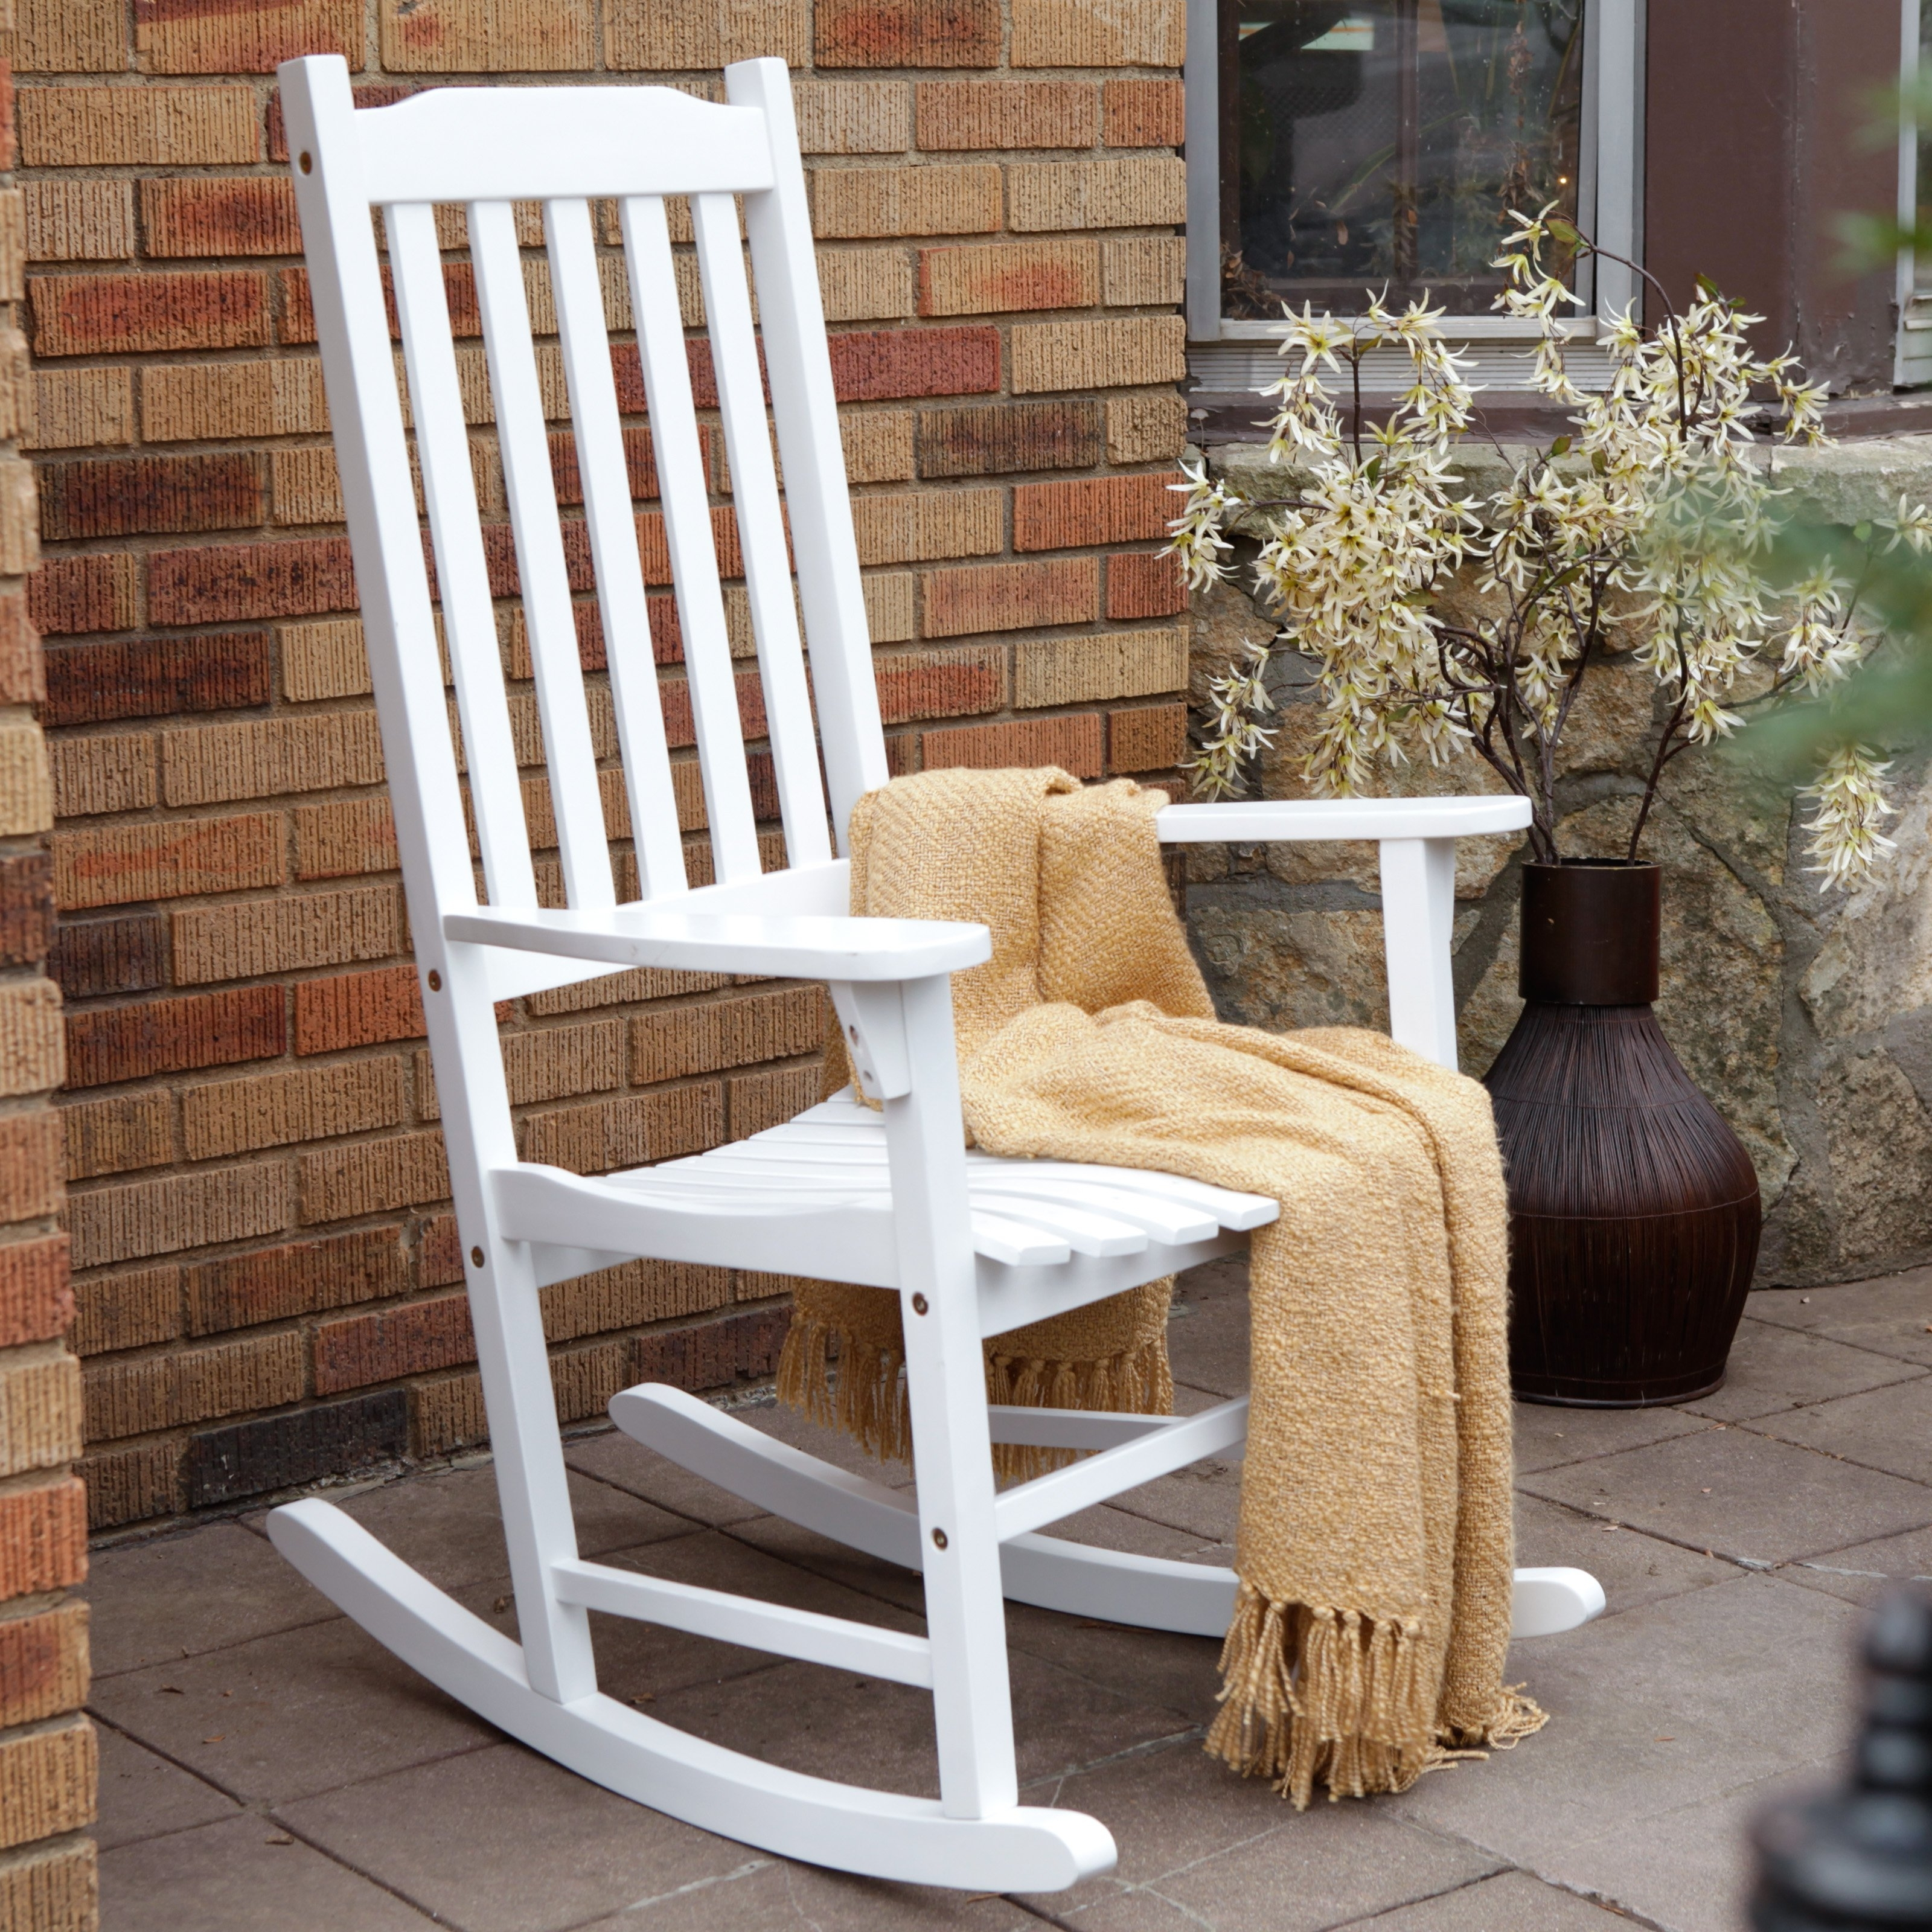 Rocking Chairs For Adults Regarding Well Known Coral Coast Indoor/outdoor Mission Slat Rocking Chair – White (View 7 of 15)